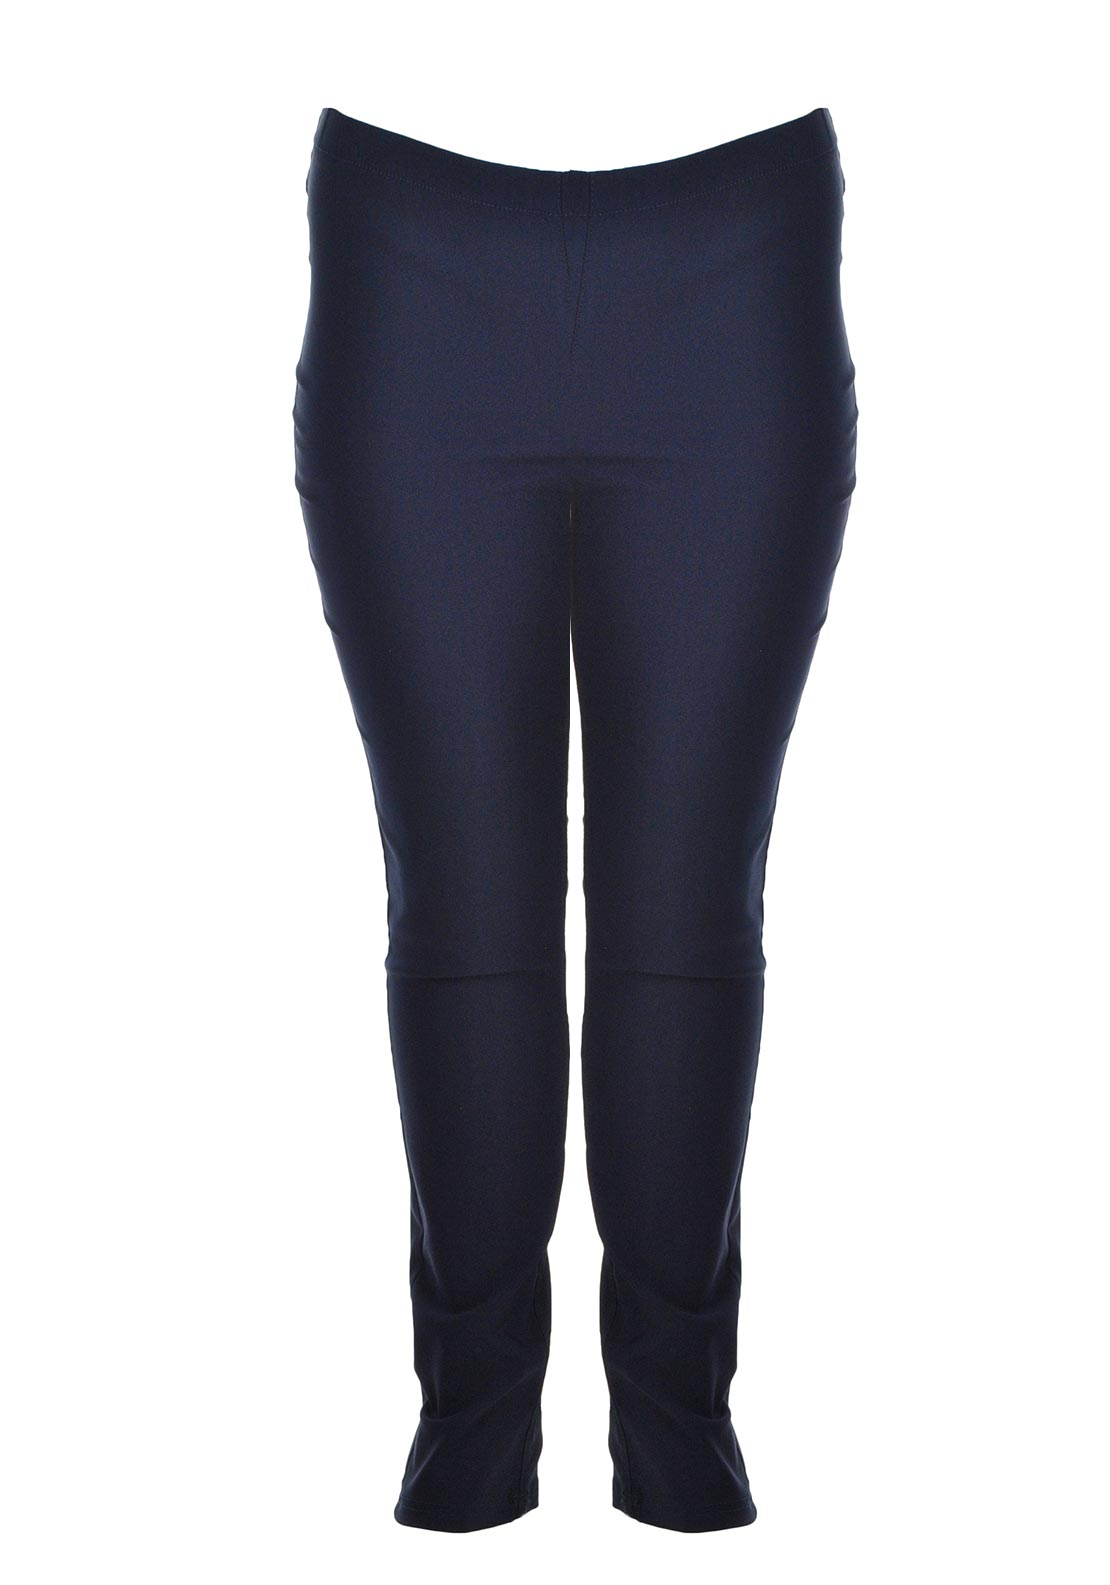 Ciso Slim Leg Legging Trousers, Navy